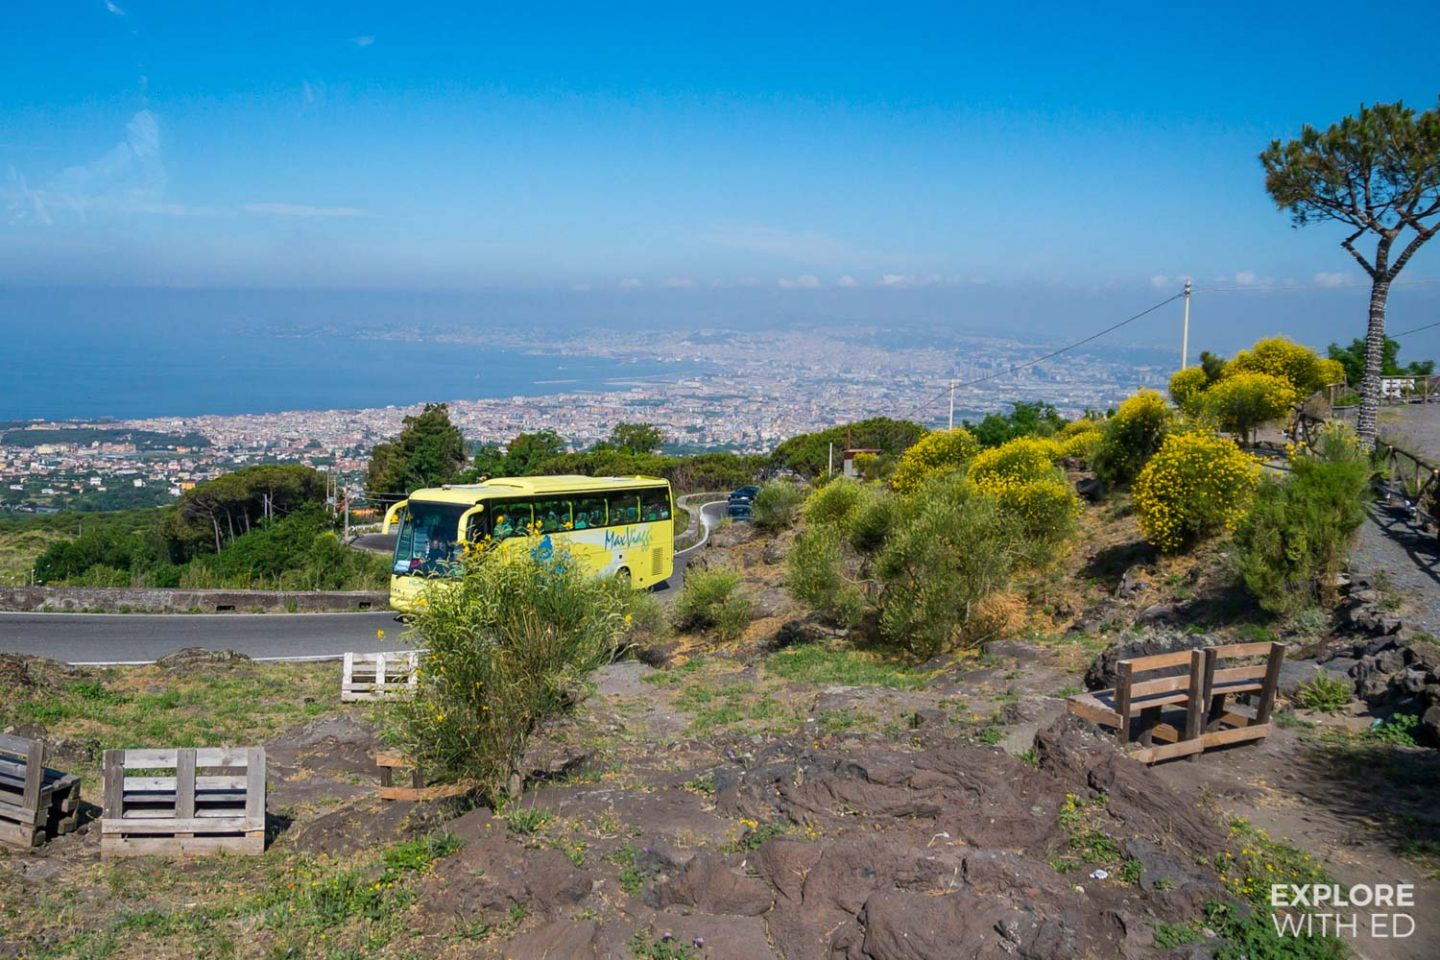 Shore excursion to Vesuvius and Pompeii by coach